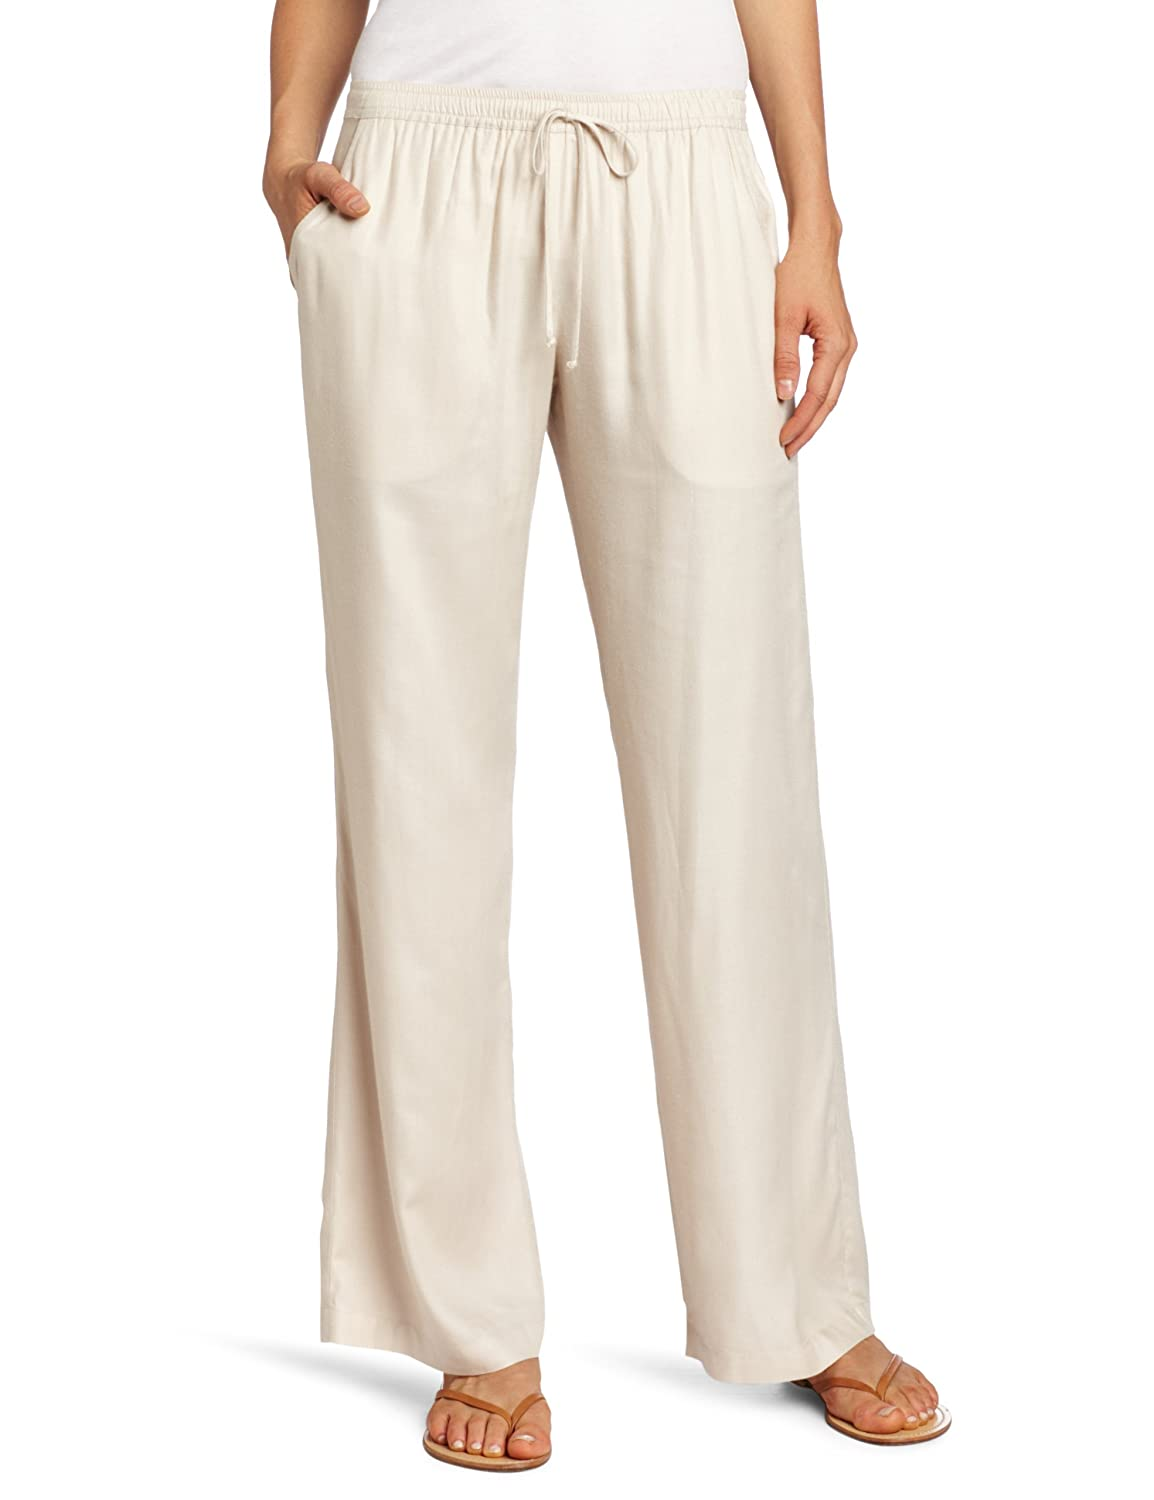 Twelfth St. by Cynthia Vincent Women's Day Off Pant